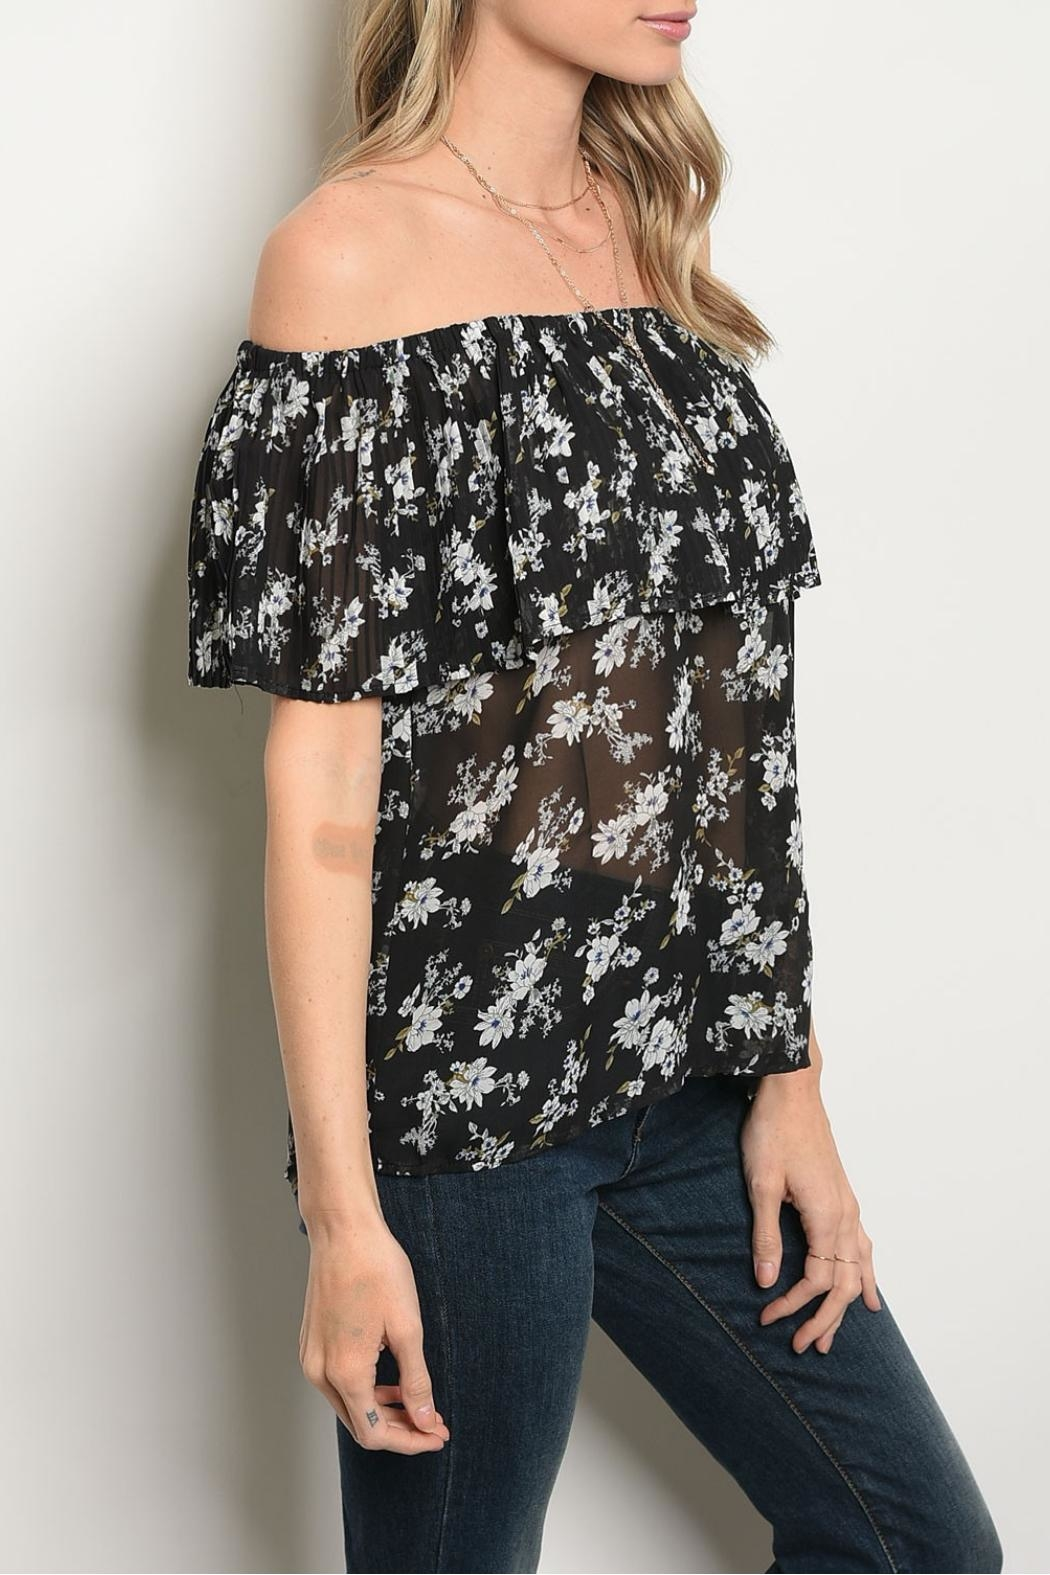 Alythea Black Floral Blouse - Side Cropped Image